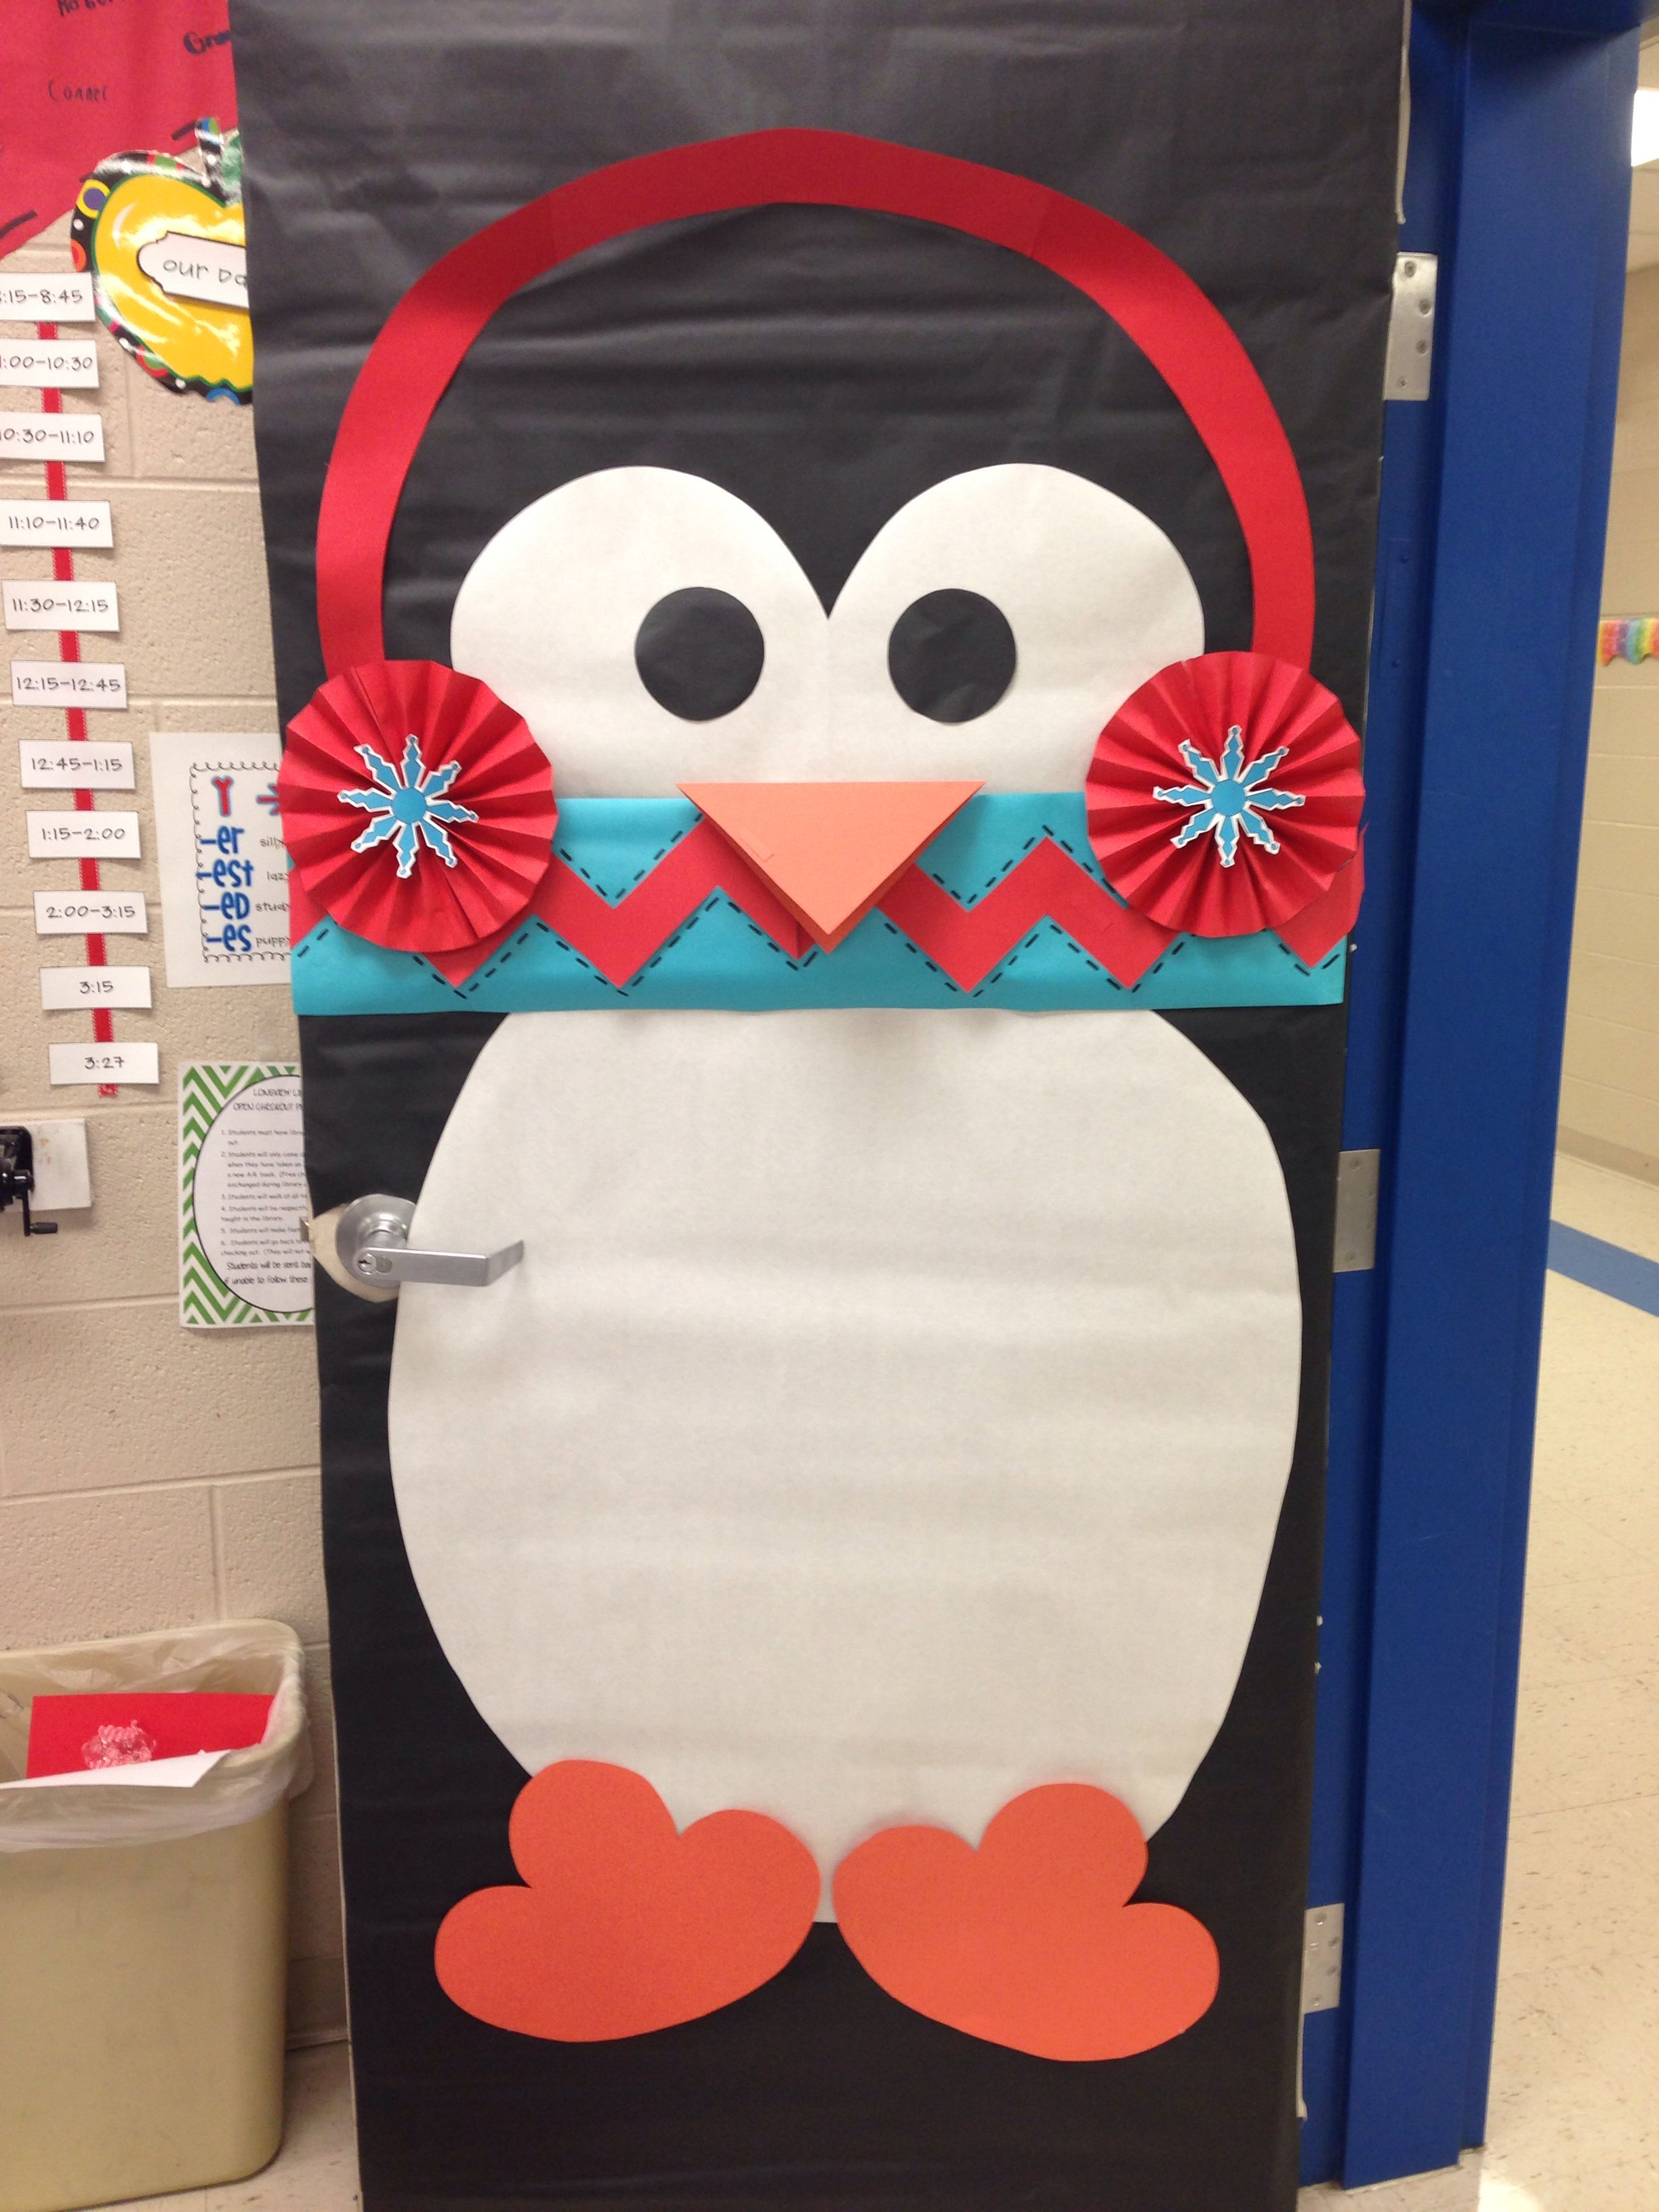 Penguin door decoration. | Talleres de navidad en la ...